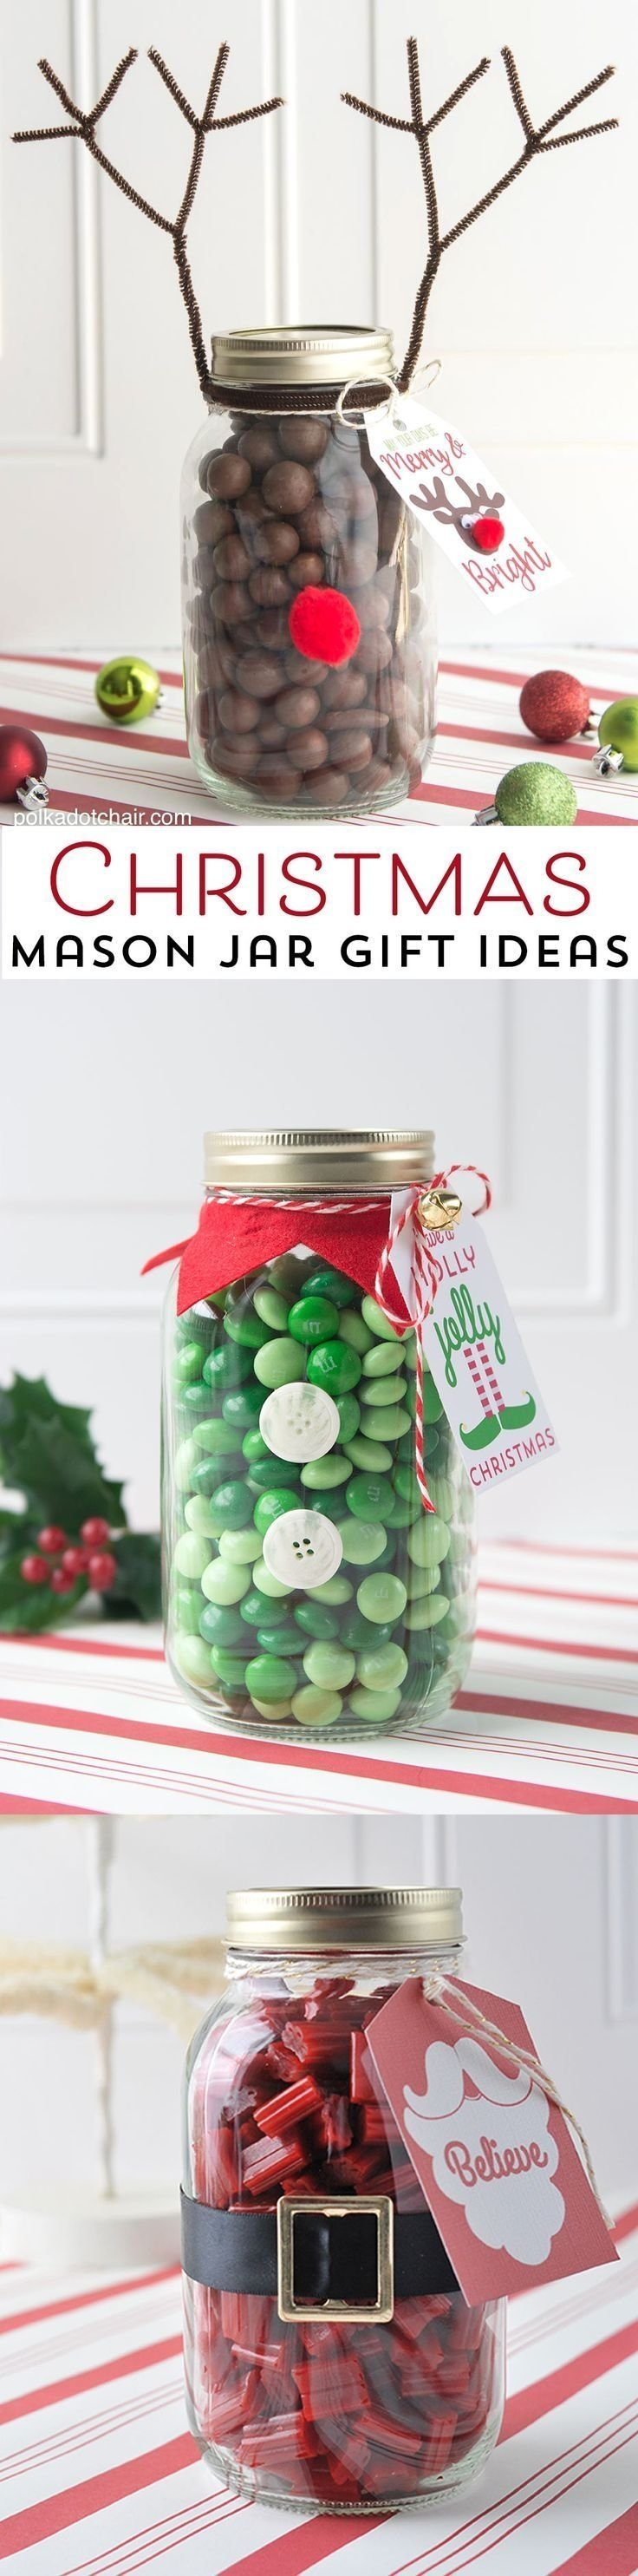 511 best christmas: sewing, gifts, wrapping and food images on